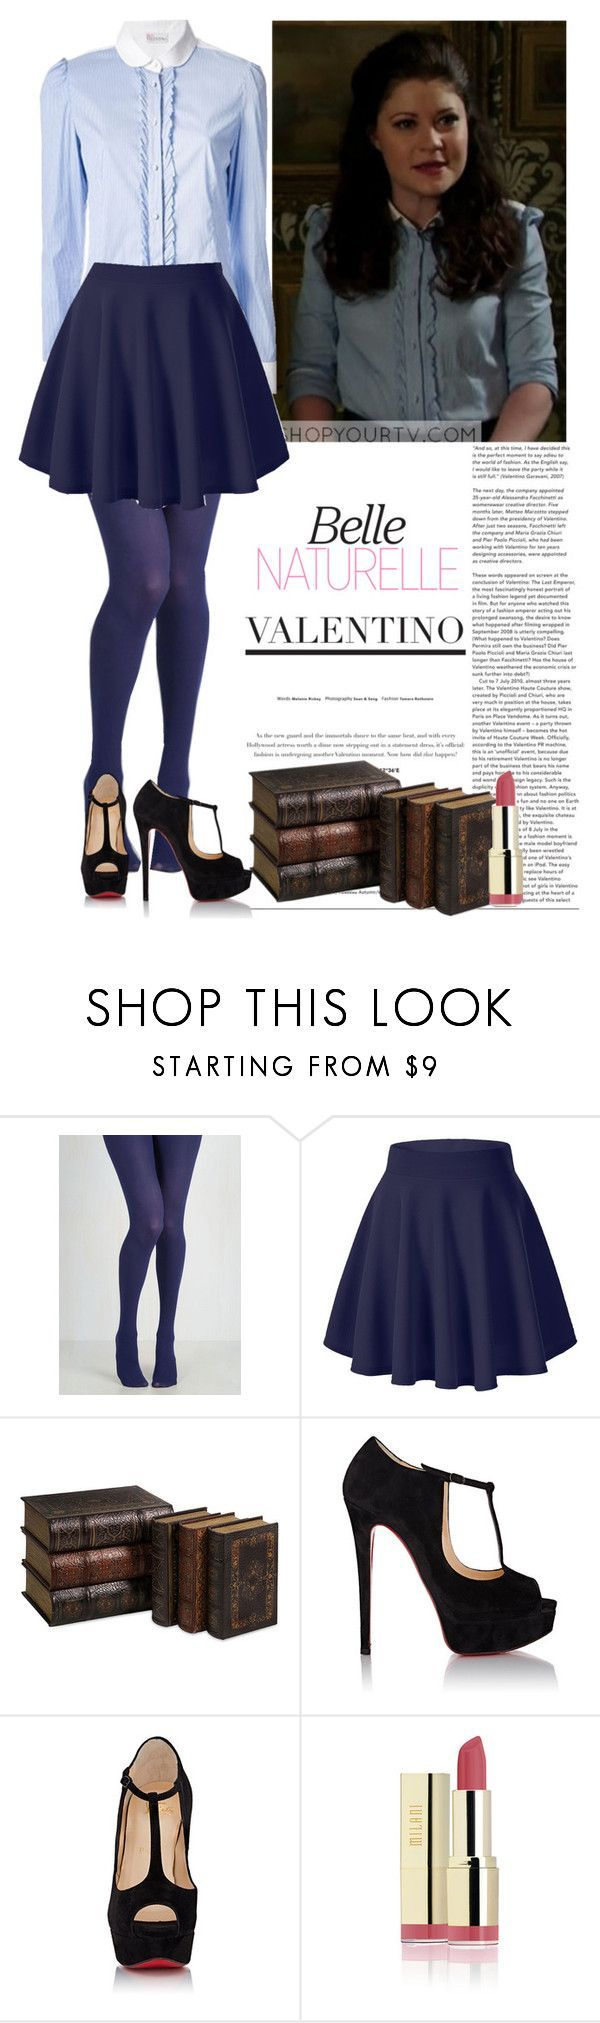 """""""Belle (Once upon a time)"""" by d-cuevas ❤ liked on Polyvore featuring Once Upon a Time, Christian Louboutin, ouat and belle"""